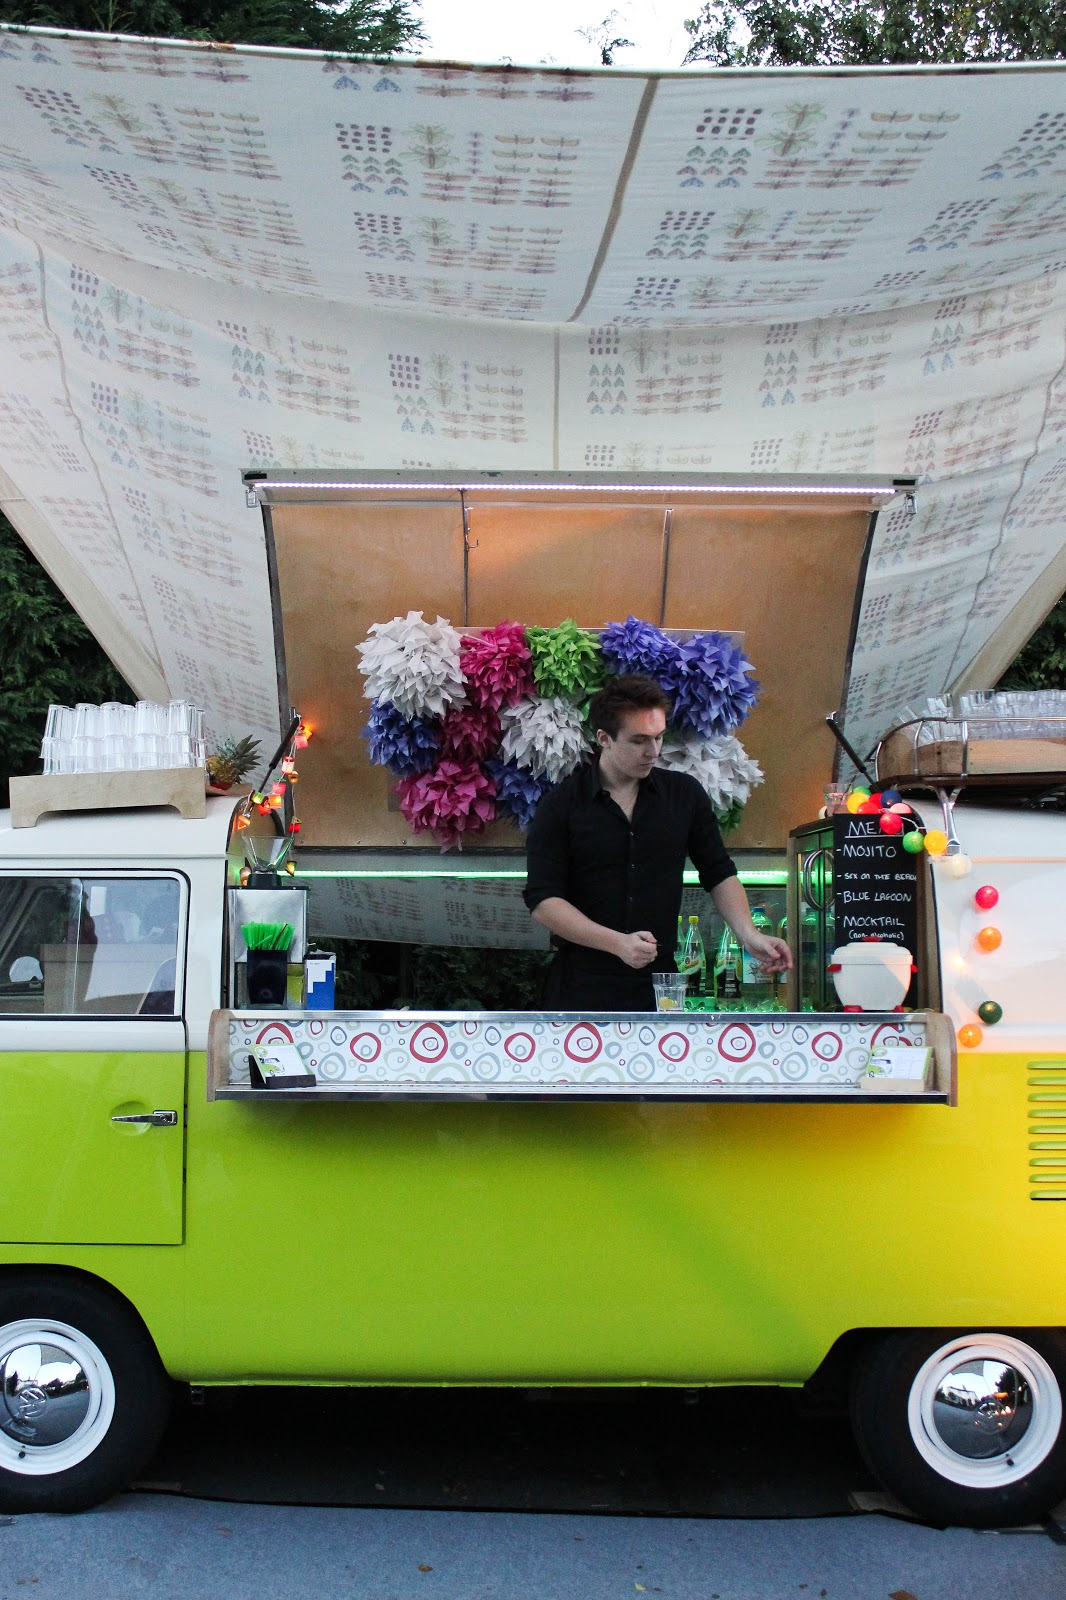 THE WEDDING BLOG DESIGNER: THE VW CAMPER VAN COCKTAIL BAR